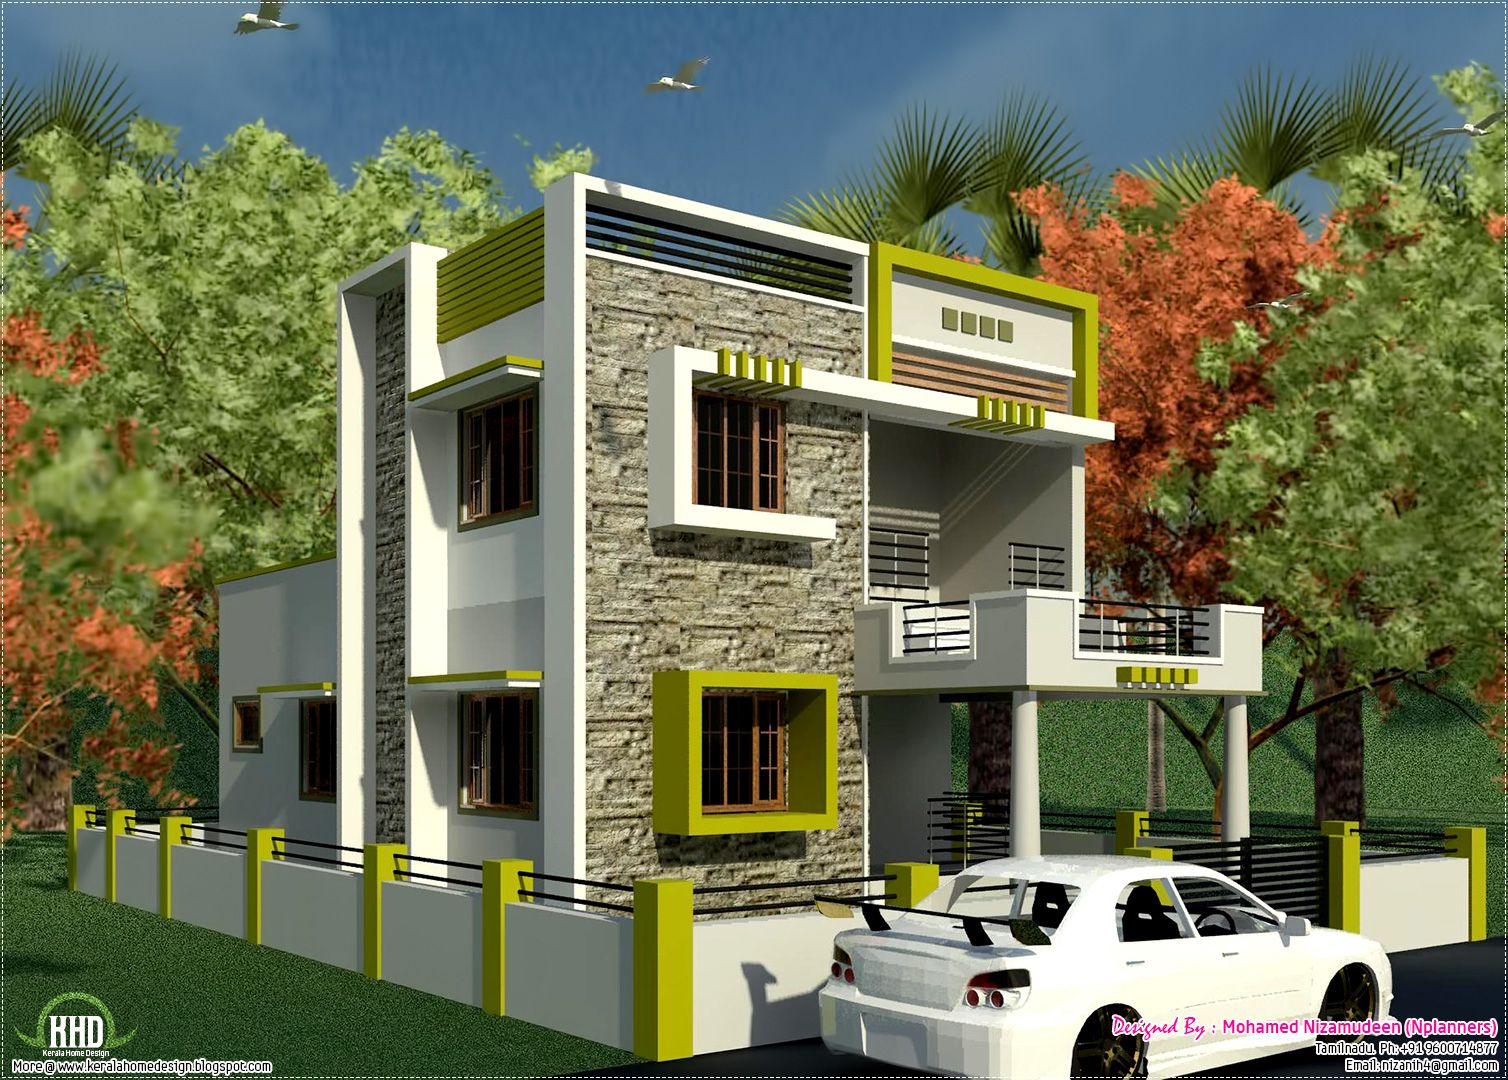 Small house with car park design tobfav com ideas for for Front view of duplex house in india